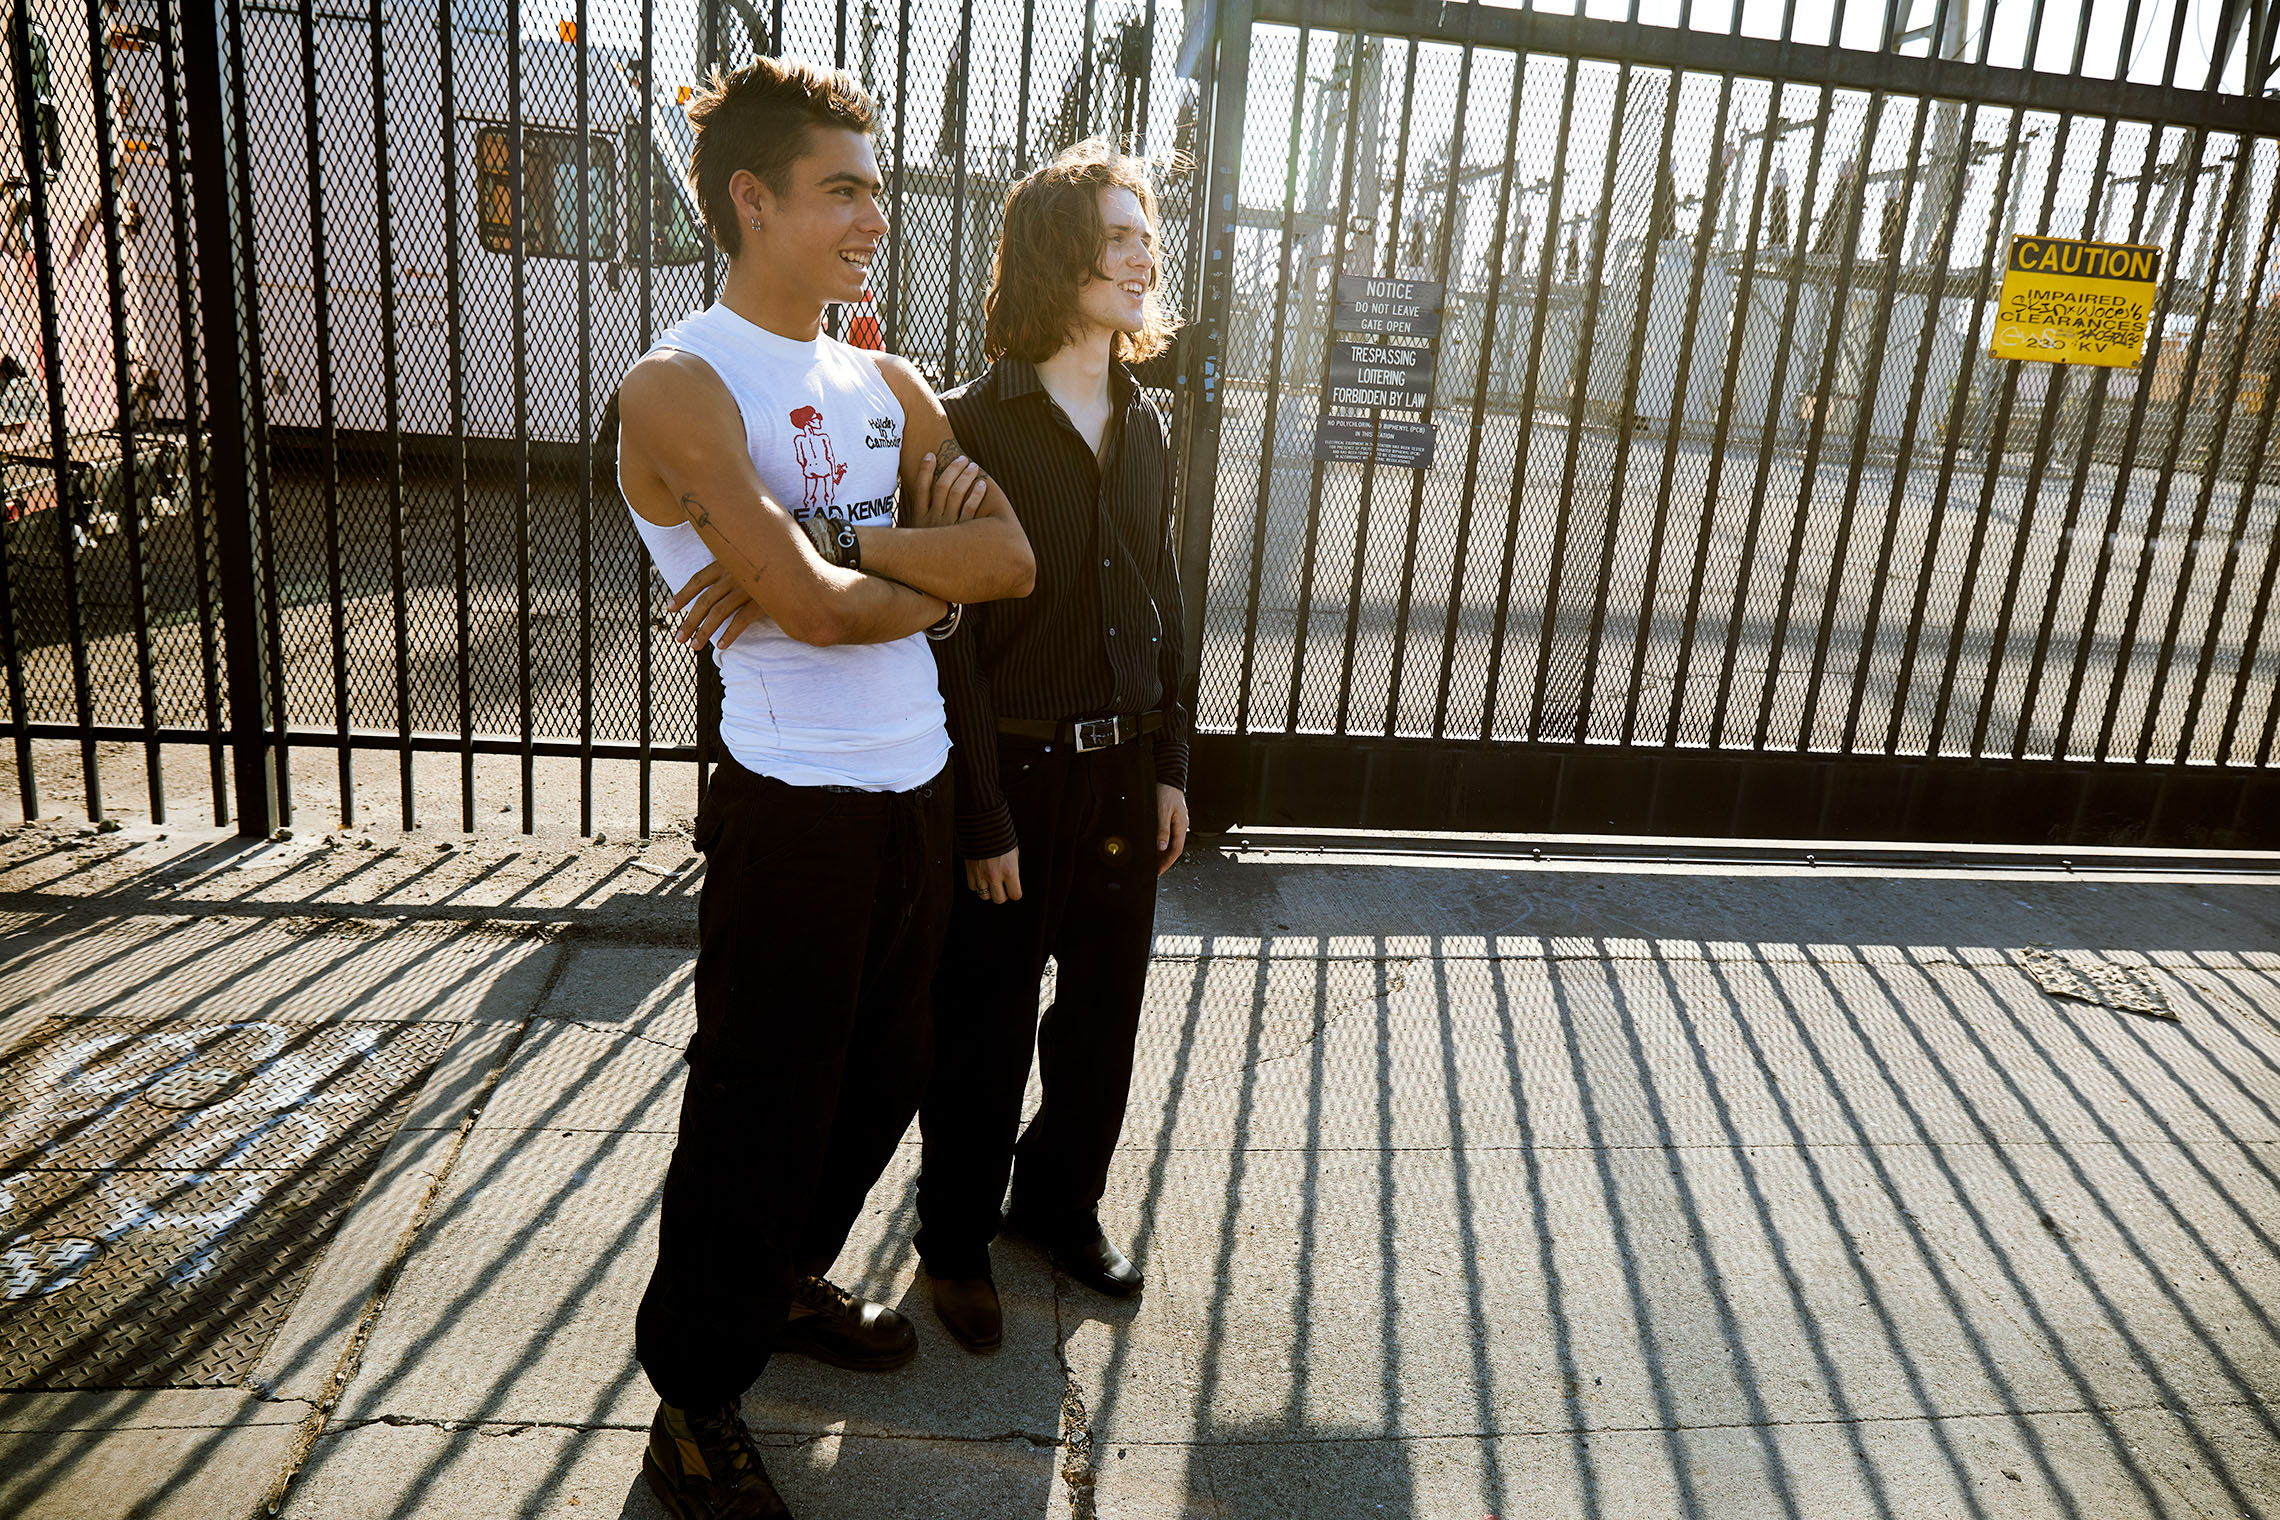 two men in highly graphical pattern of an iron fence through which shines sunlight, both smiling in this male fashion and accessory shoot in LA.